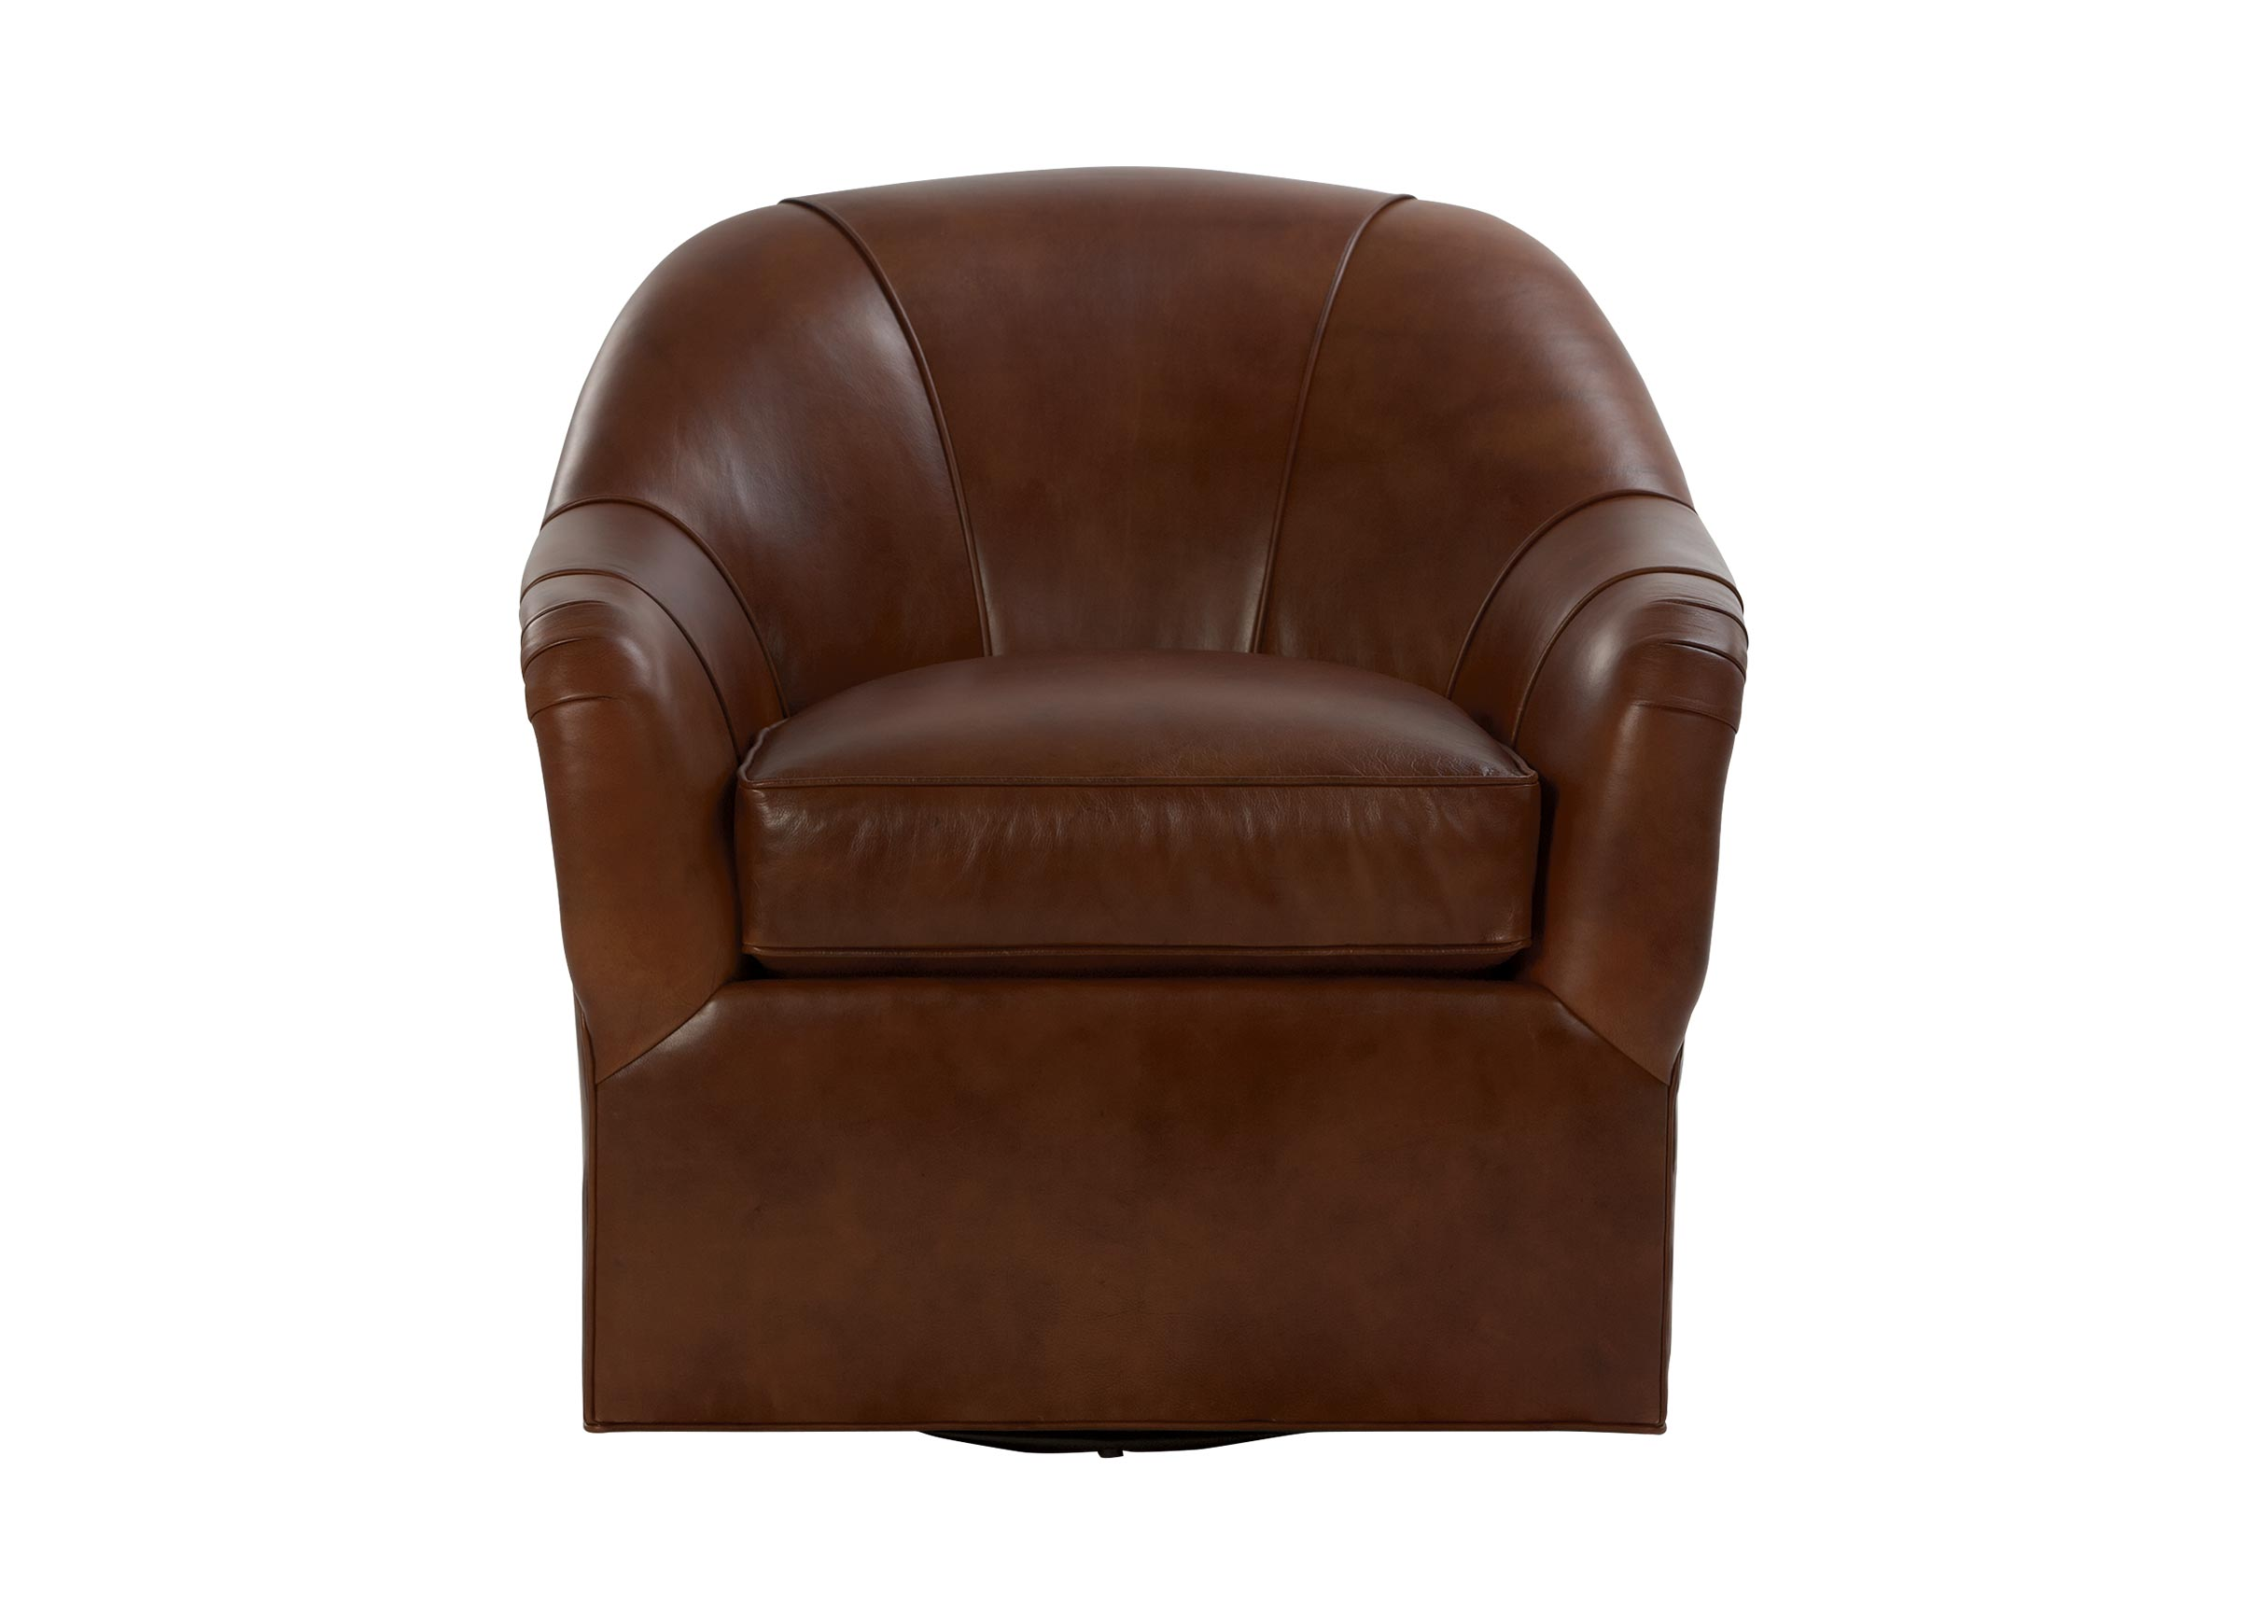 Marvelous Buy Leather Swivel Chair Contemporary Round Tufted Faux Ncnpc Chair Design For Home Ncnpcorg